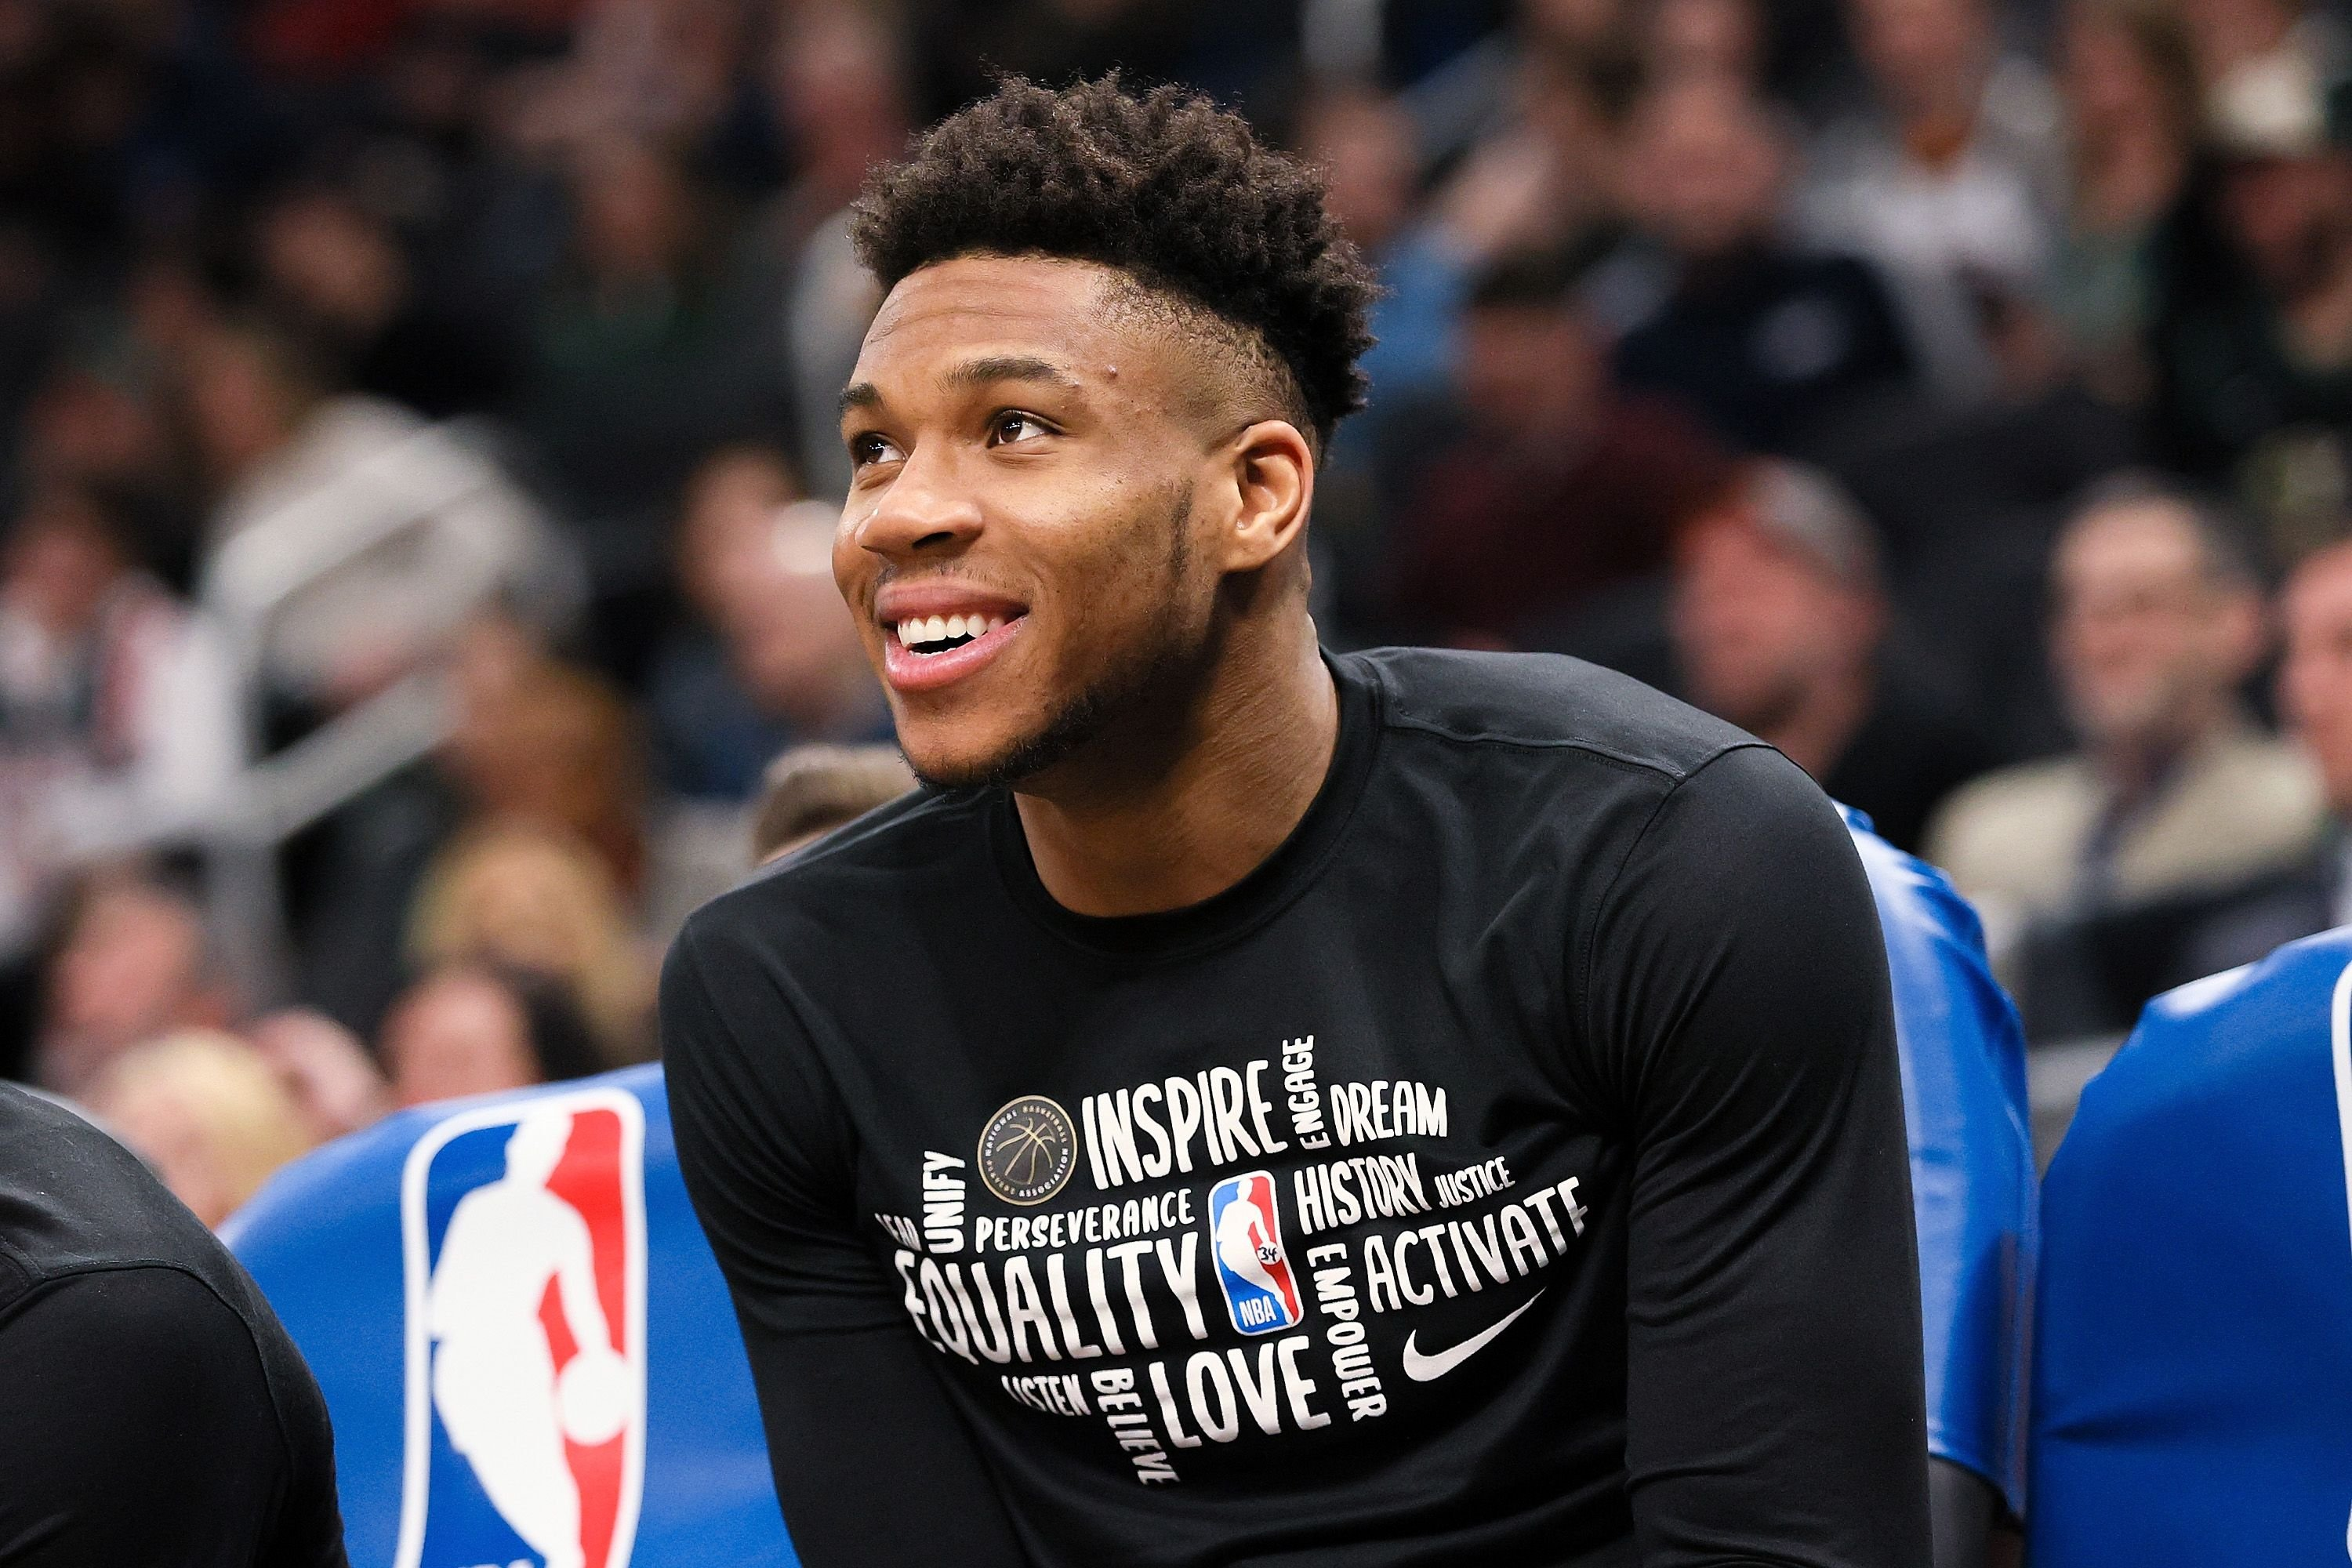 Giannis Antetokounmpo, #34 of the Milwaukee Bucks looks on from the bench in the fourth quarter against the Oklahoma City Thunder at the Fiserv Forum on February 28, 2020 in Milwaukee, Wisconsin   Photo: Getty Images